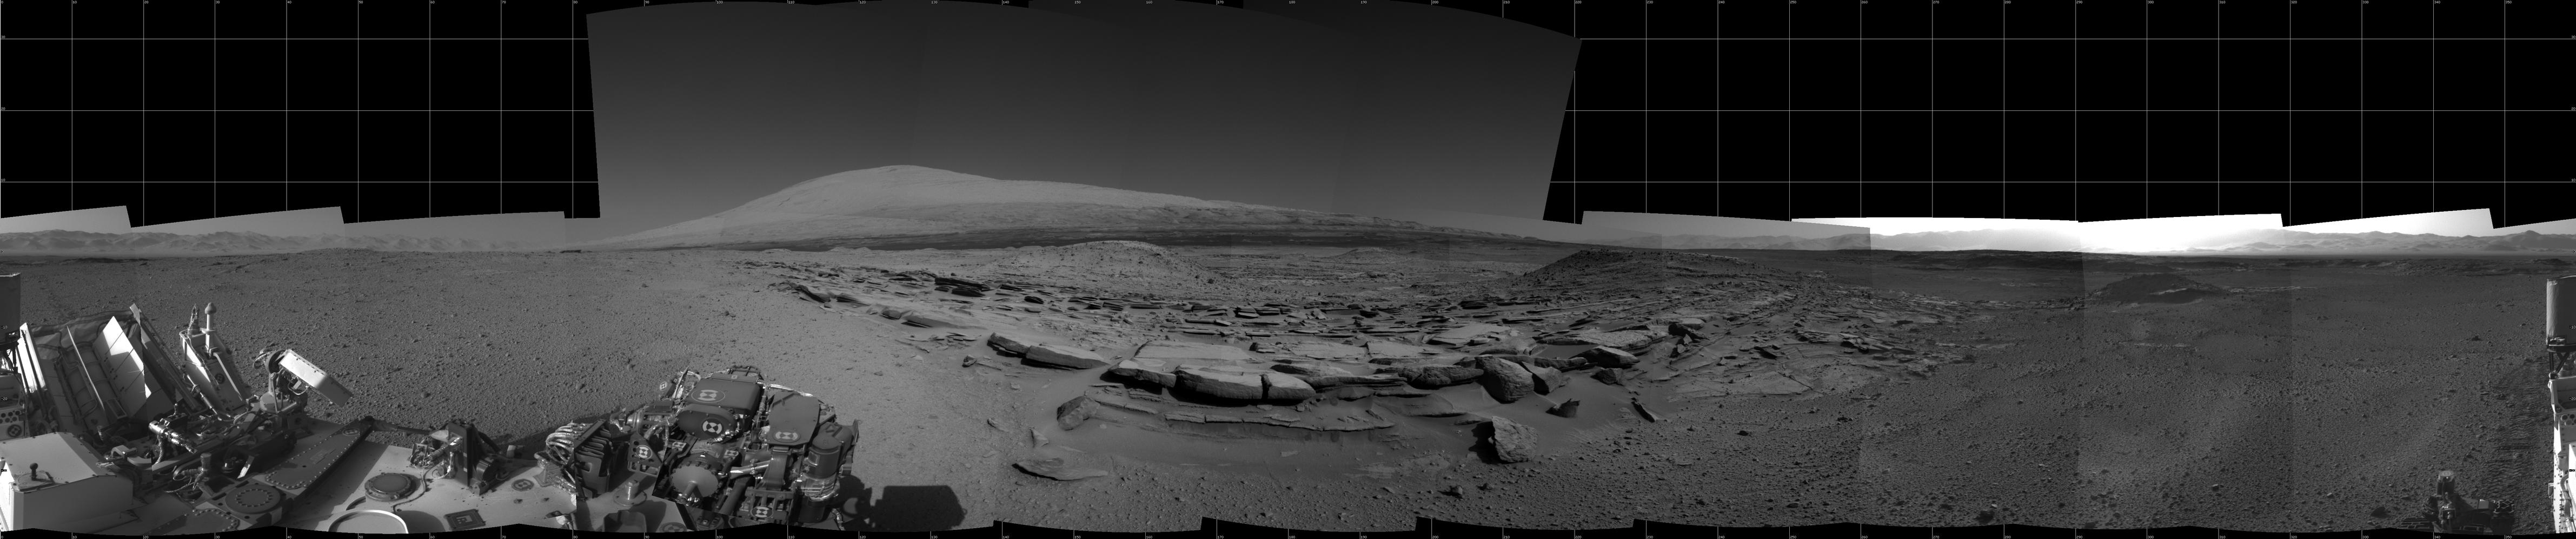 "This view from NASA's Curiosity Mars rover spans 360 degrees, centered southward toward a planned science waypoint at ""the Kimberley,"" with an outcrop of eroded sandstone in the foreground. It combines several frames taken by the Navigation Camera on March 18, 2014."